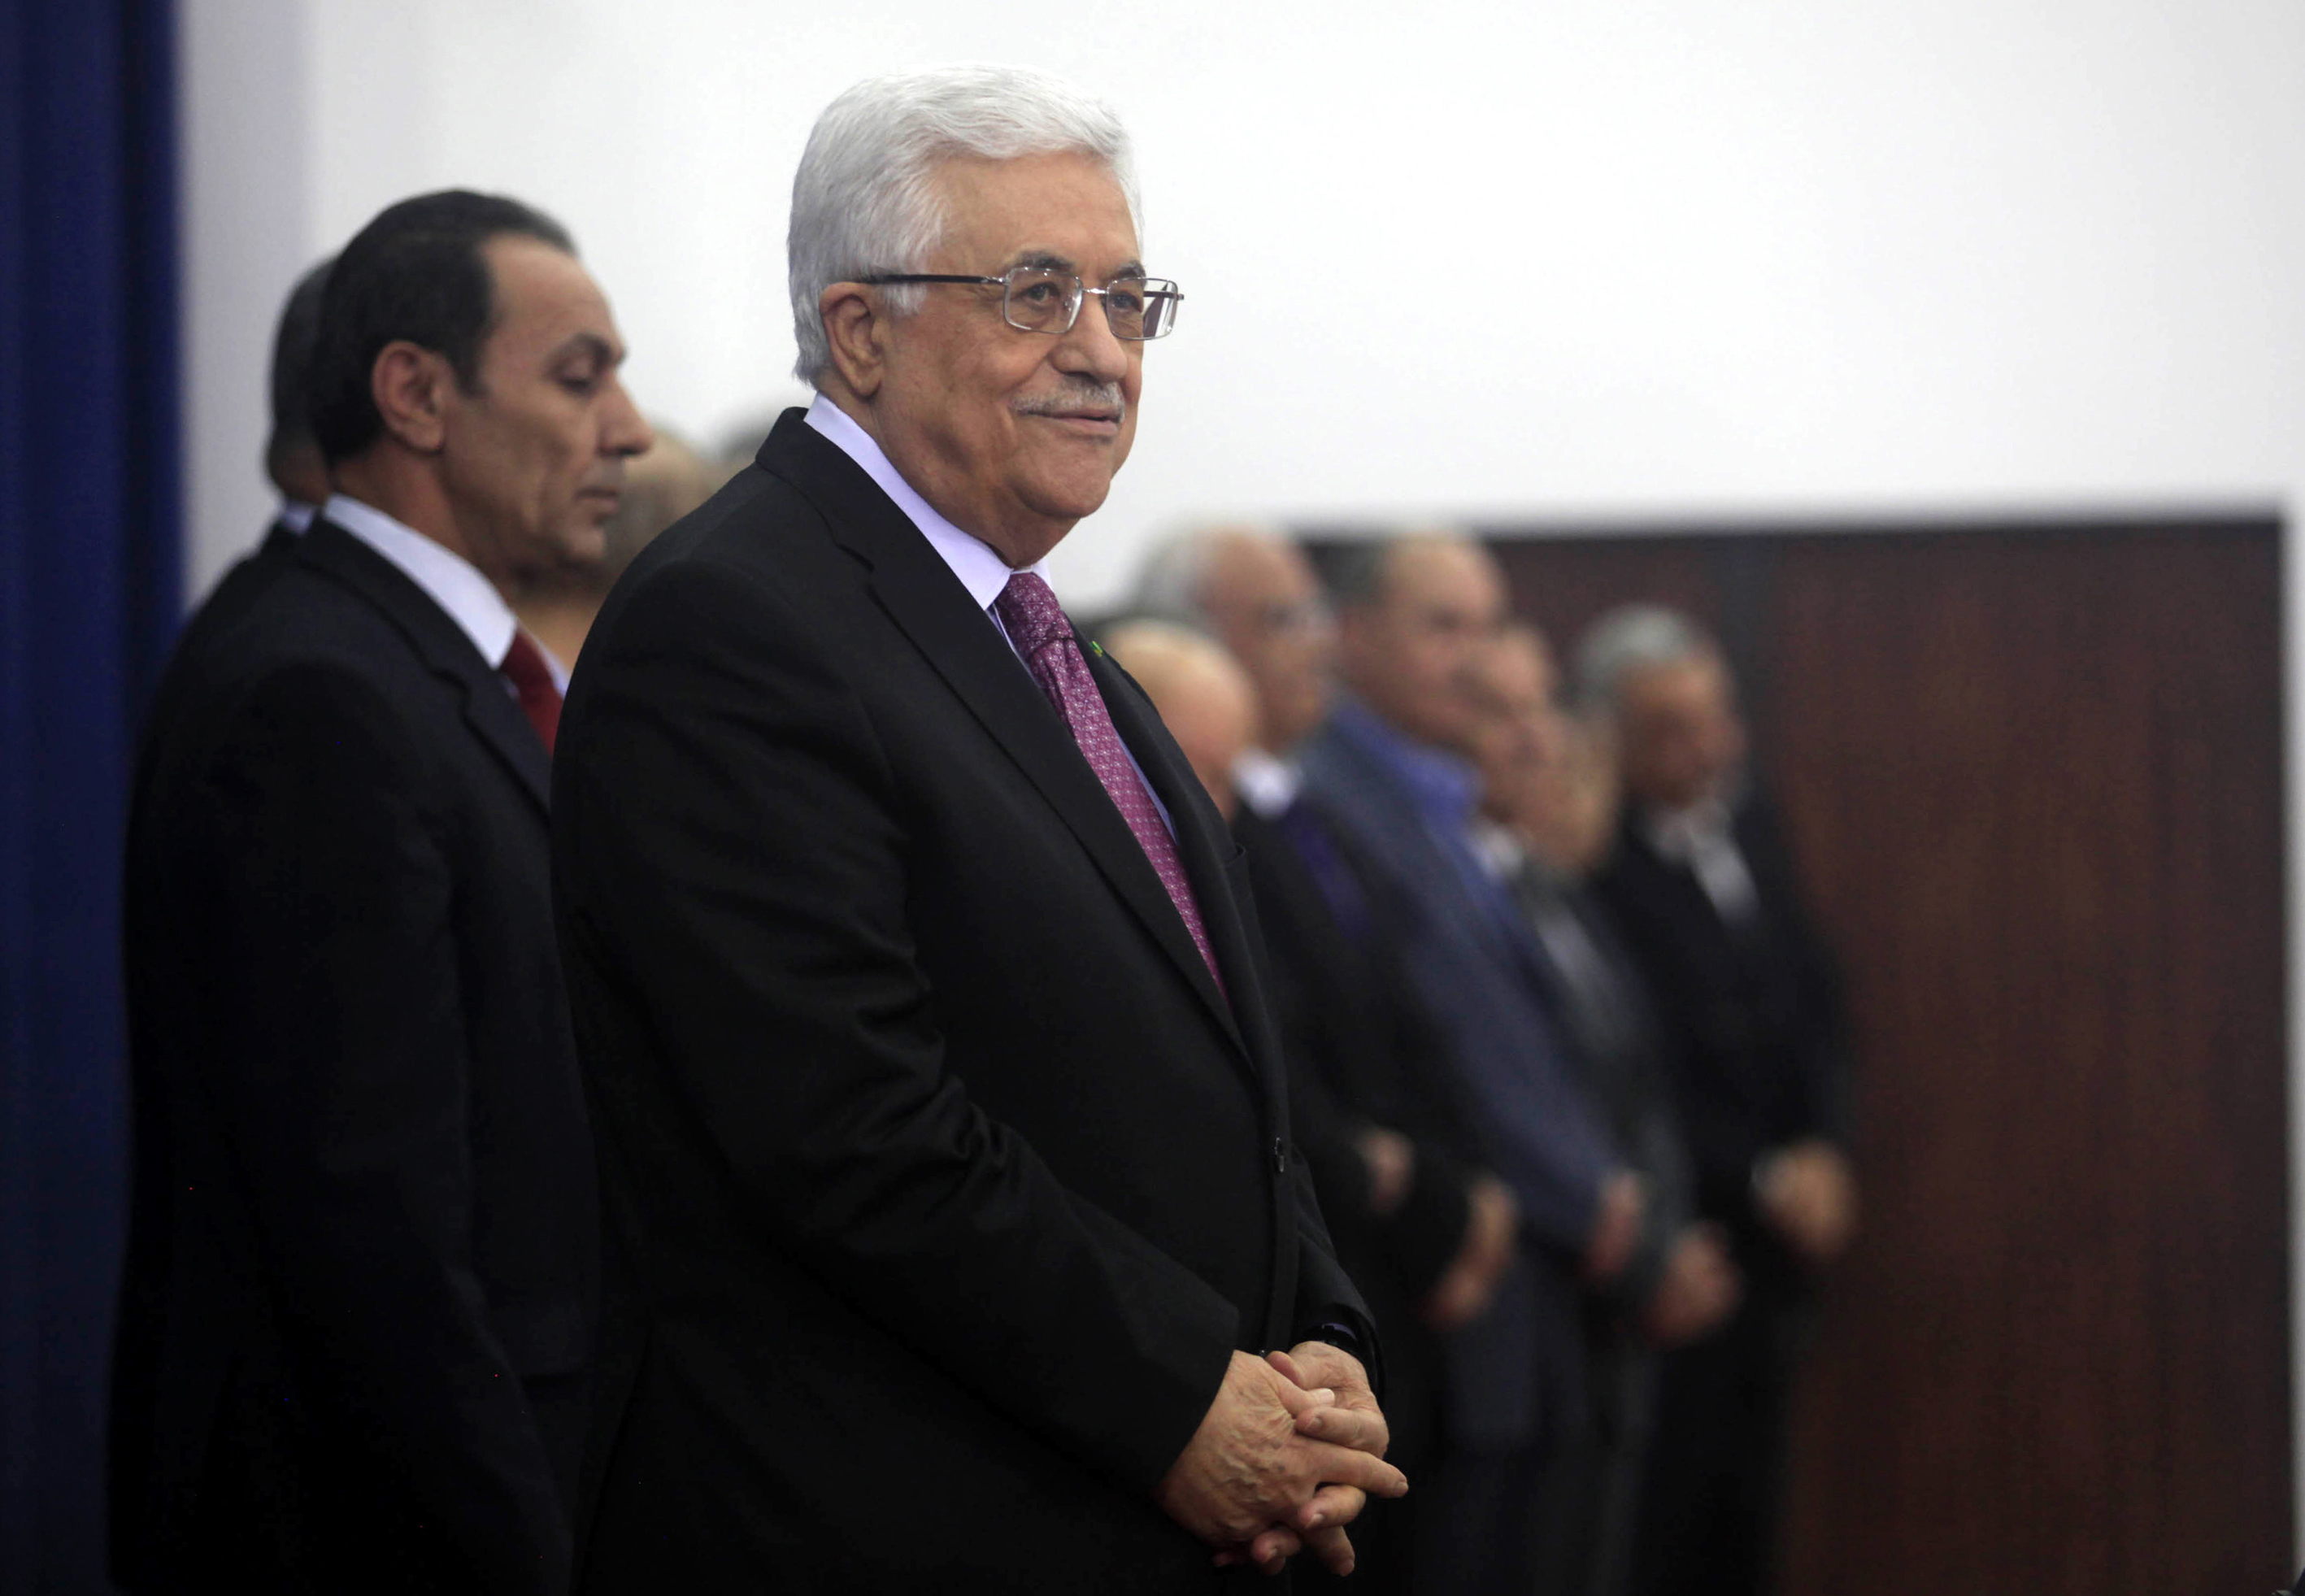 Palestinian President Mahmoud Abbas attends the swearing-in ceremony with the new unity government  in the West Bank town of Ramallah on June 02, 2014.